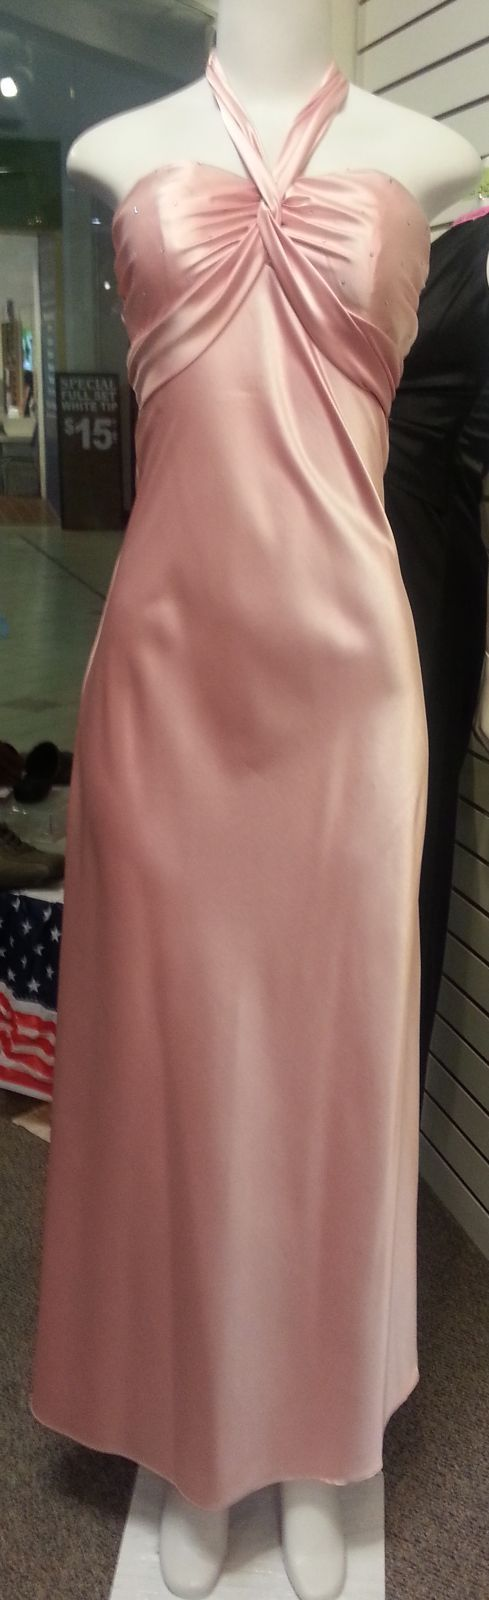 Pink Long Dress, front view, sleveeless, halter neck,  zipper